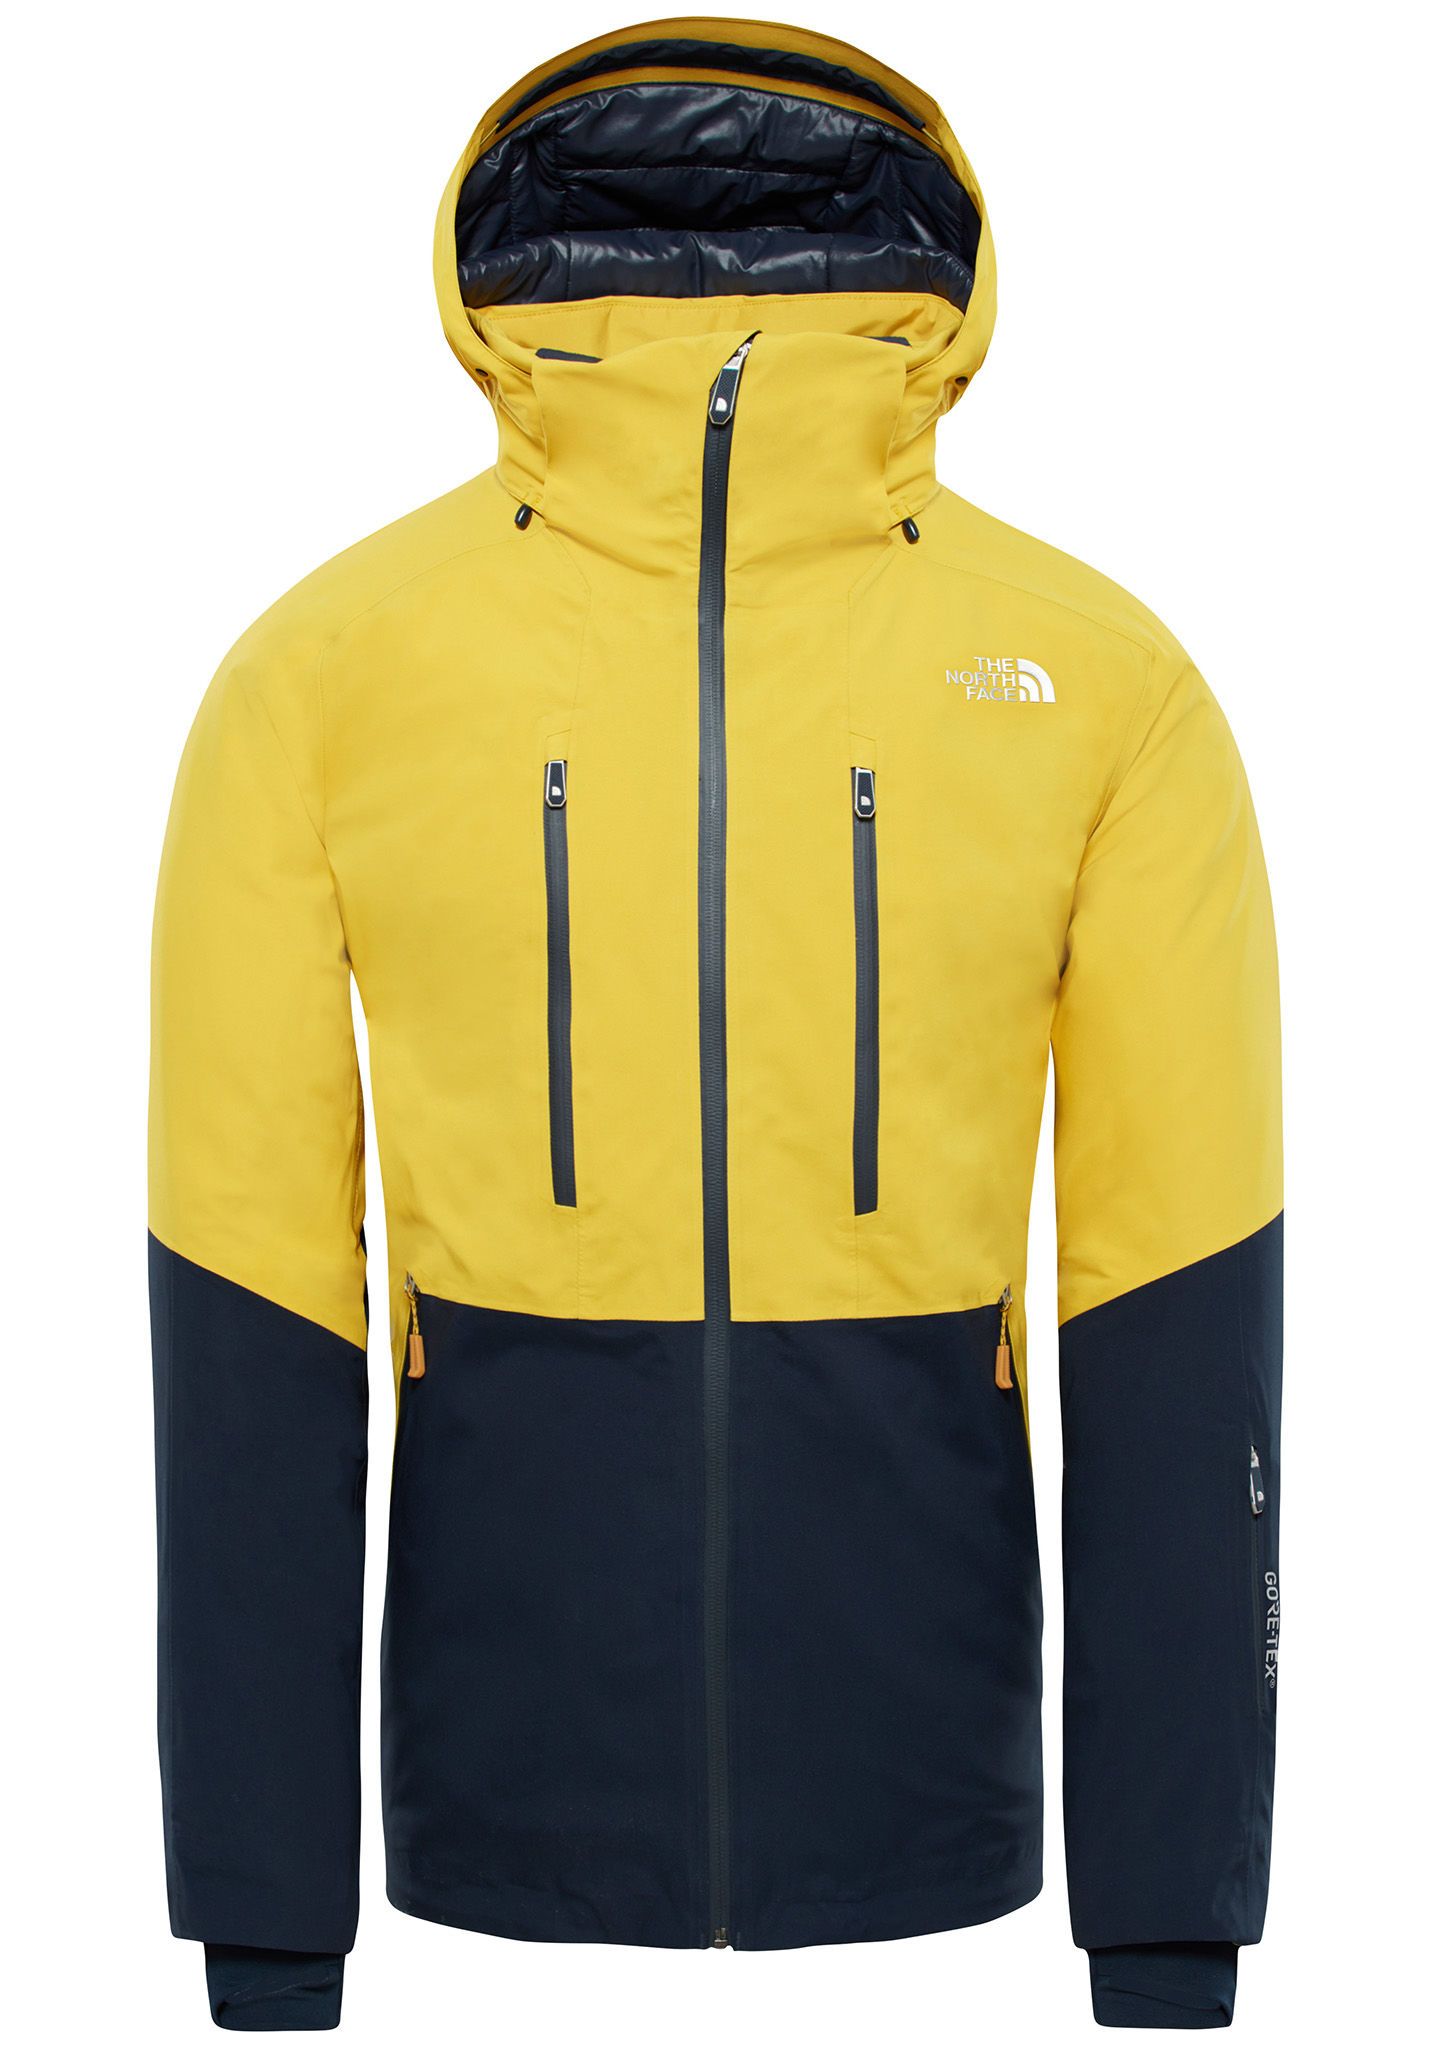 e56695ab0 THE NORTH FACE Anonym - Ski Jacket for Men - Yellow